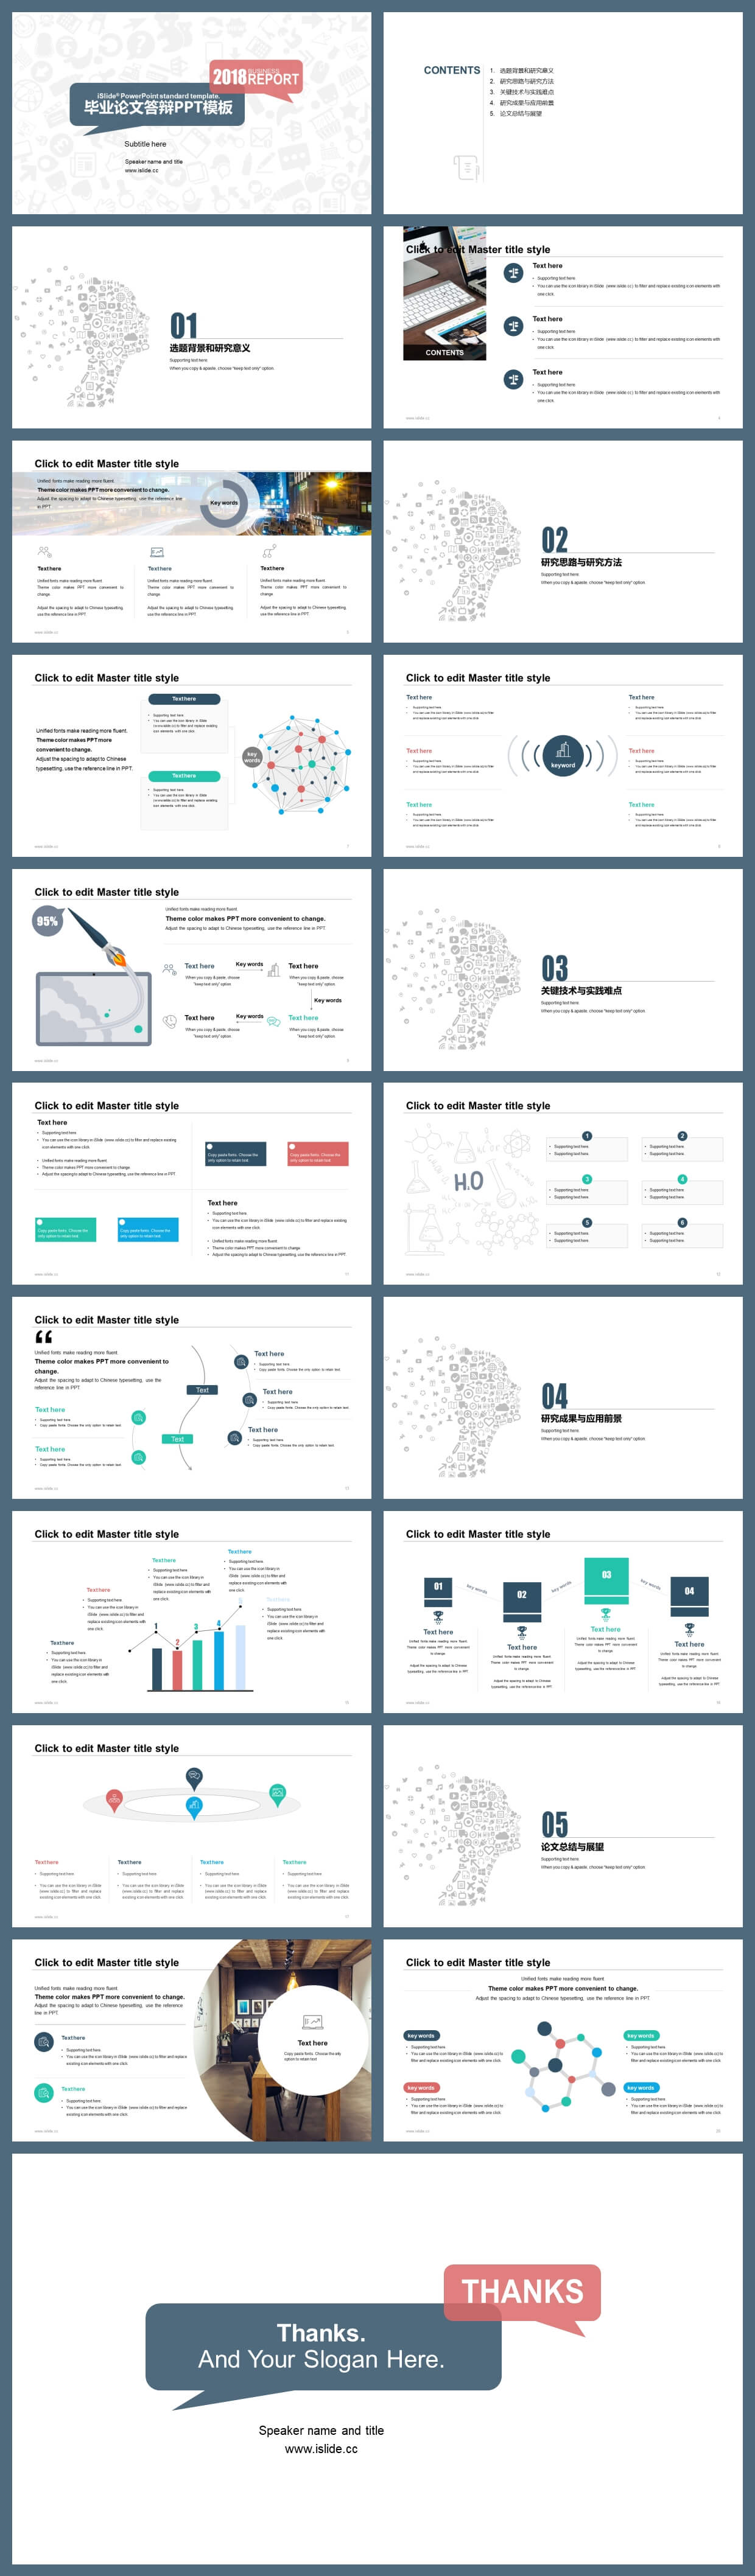 Master Thesis Defense Powerpoint Template – Just Free Slides with regard to Powerpoint Templates For Thesis Defense